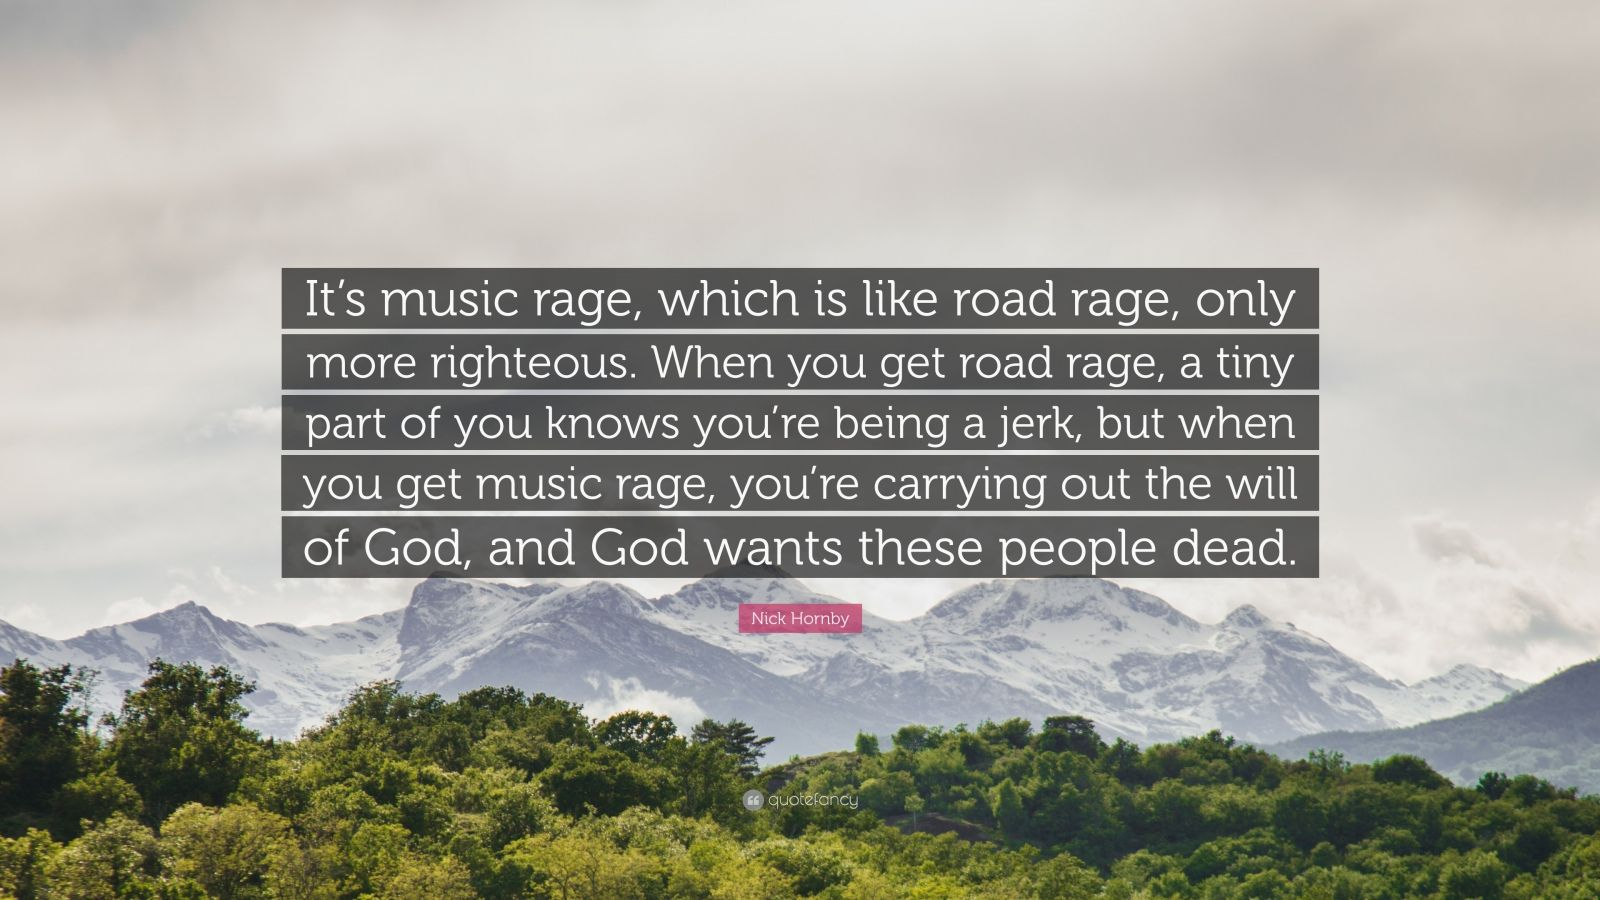 """Nick Hornby Quote: """"It's music rage, which is like road rage, only more righteous. When you get road rage, a tiny part of you knows you're being a jerk, but when you get music rage, you're carrying out the will of God, and God wants these people dead."""""""